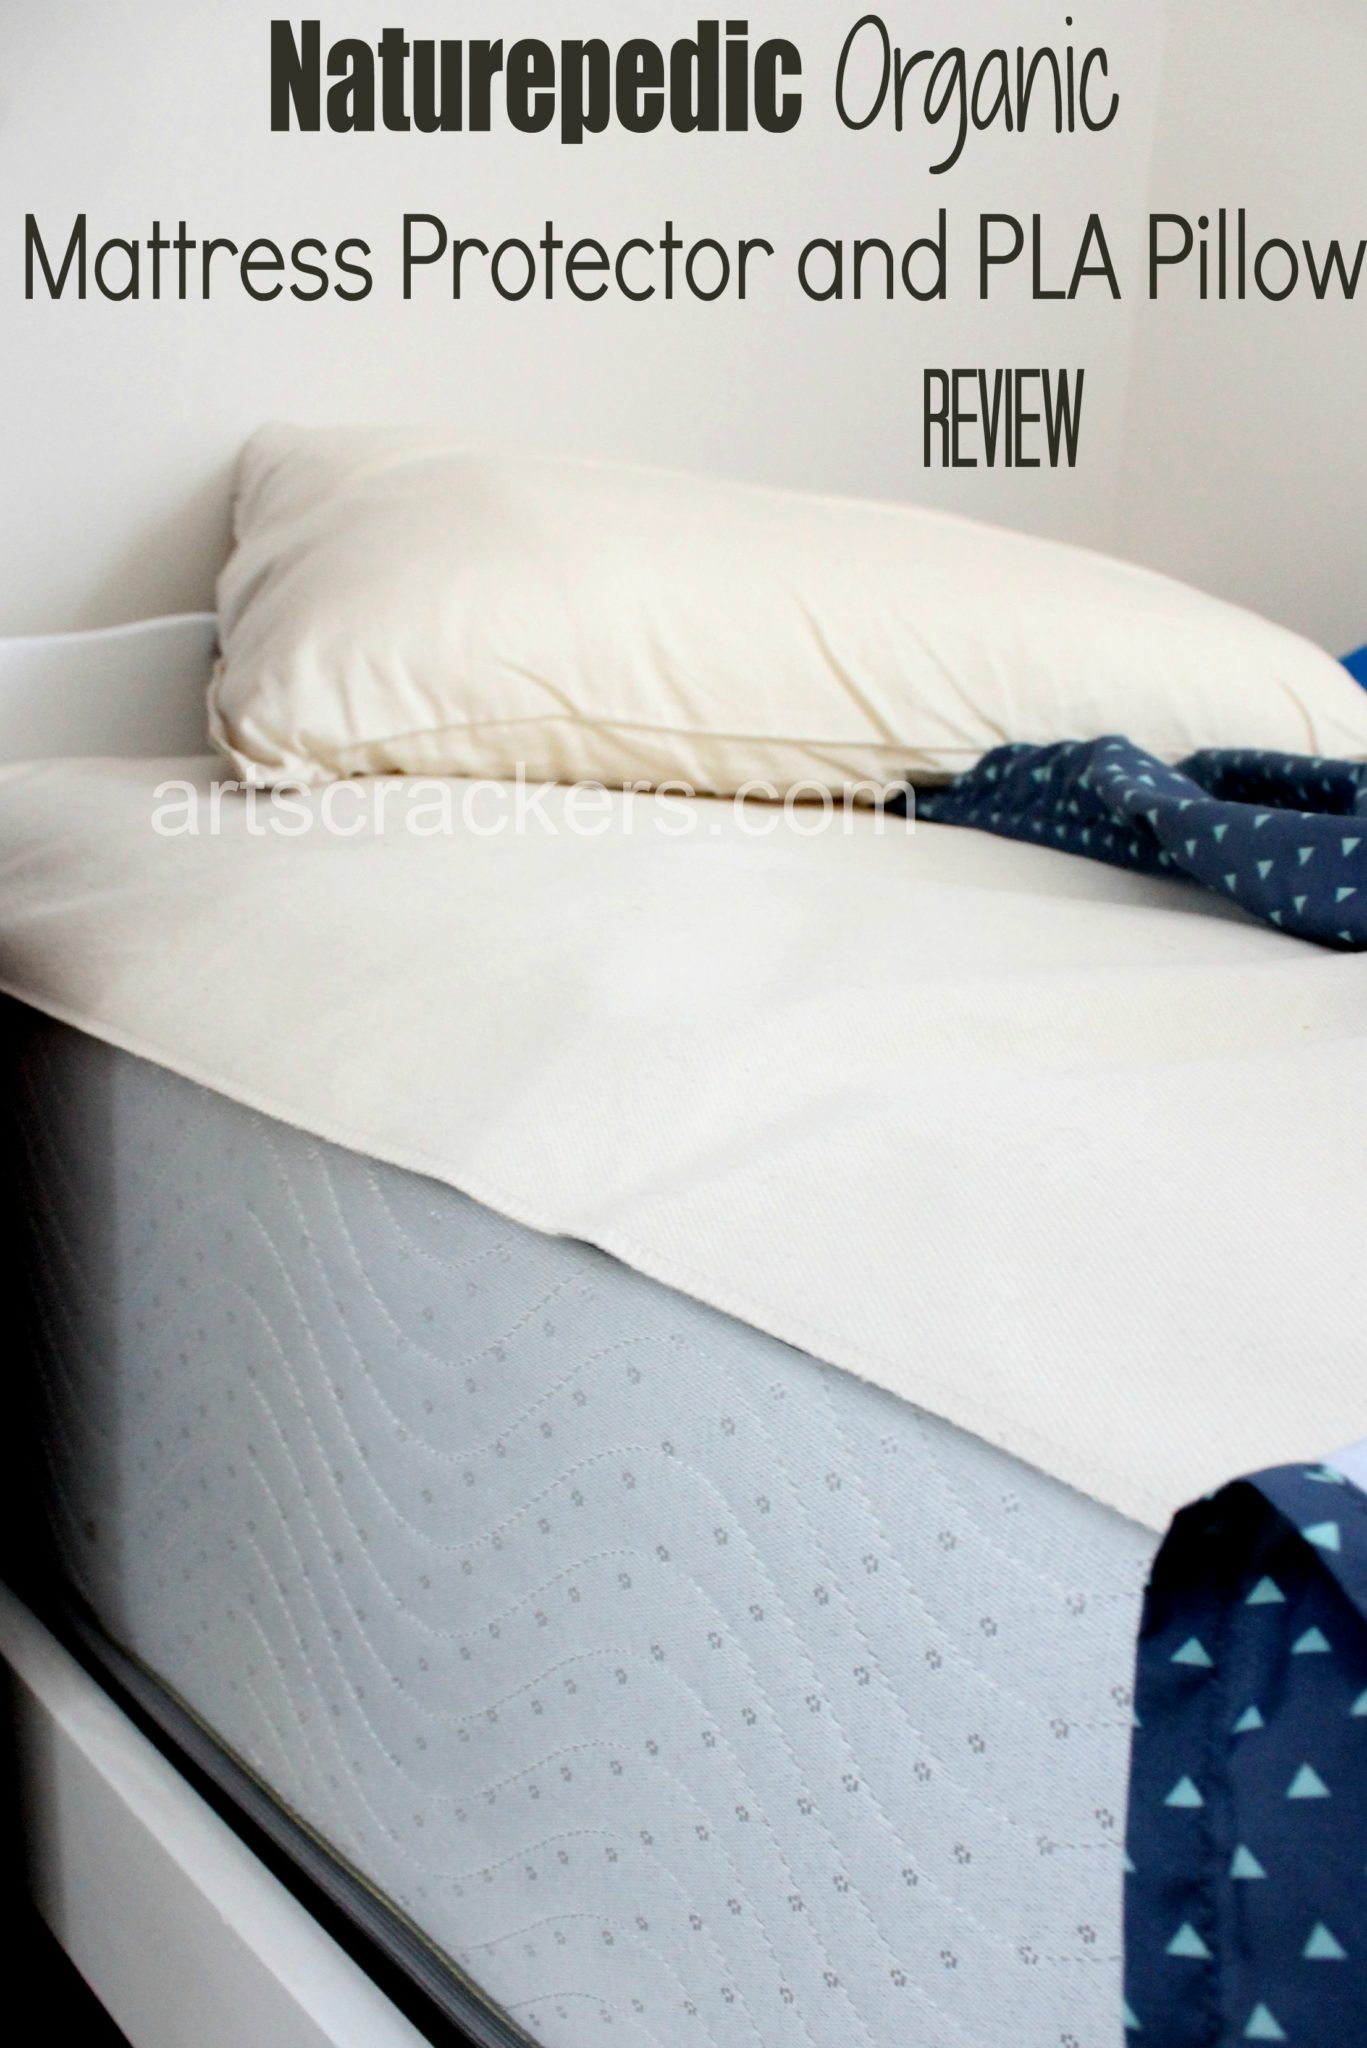 Naturepedic Organic Mattress Protector and PLA Pillow Review. Click the picture to read more.